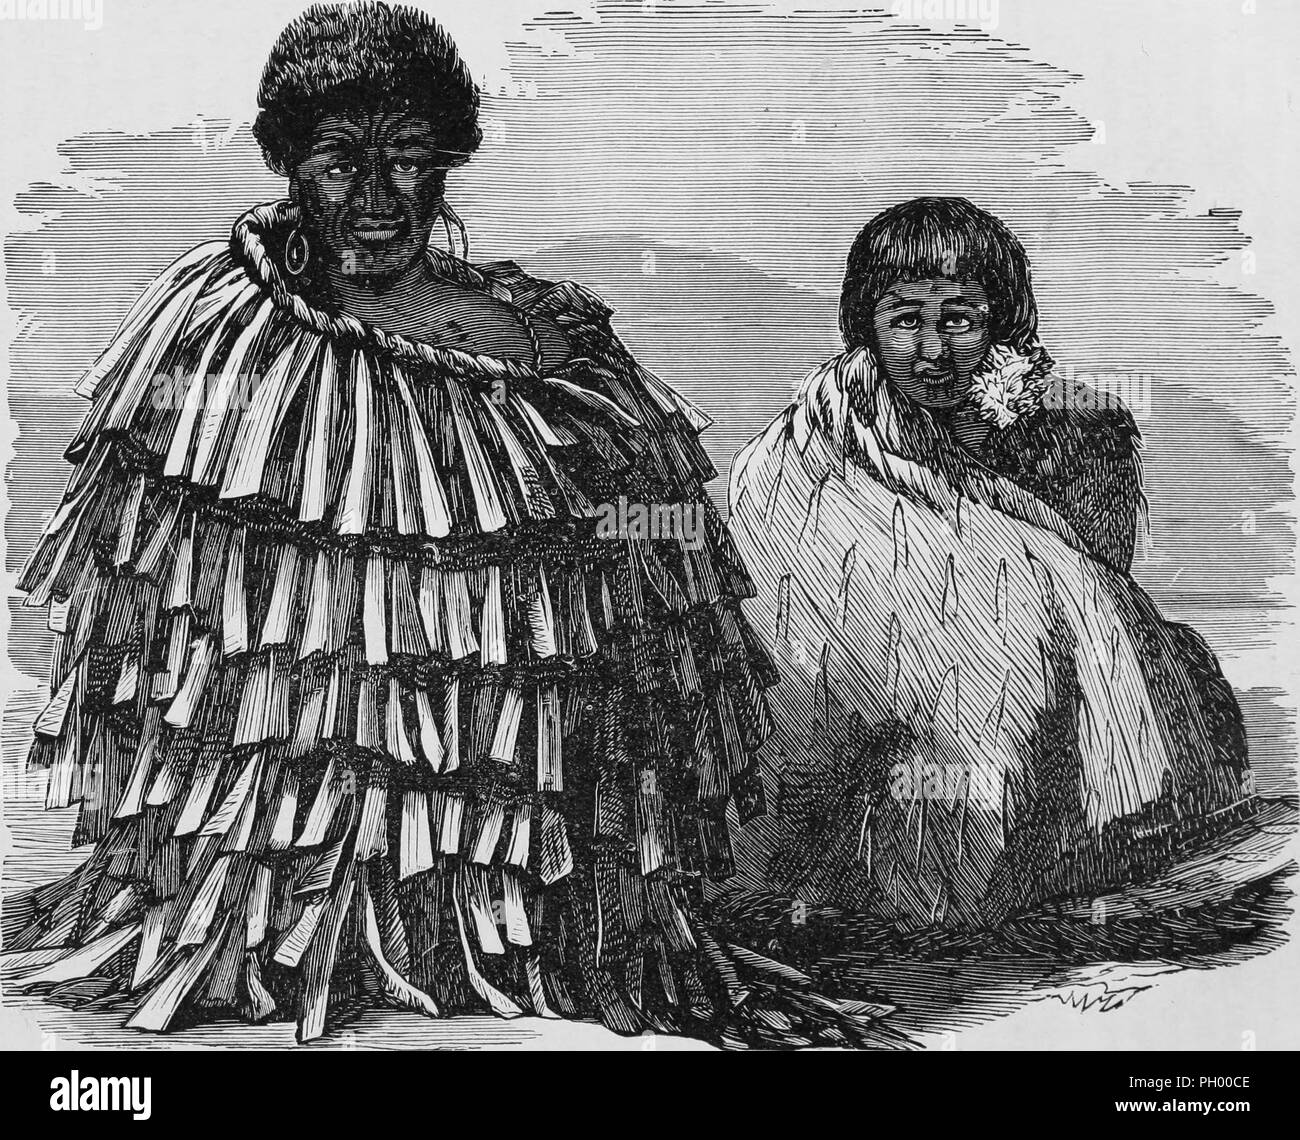 d174c1372 Black and white vintage print, depicting a seated Maori Chief, with facial  ta moko